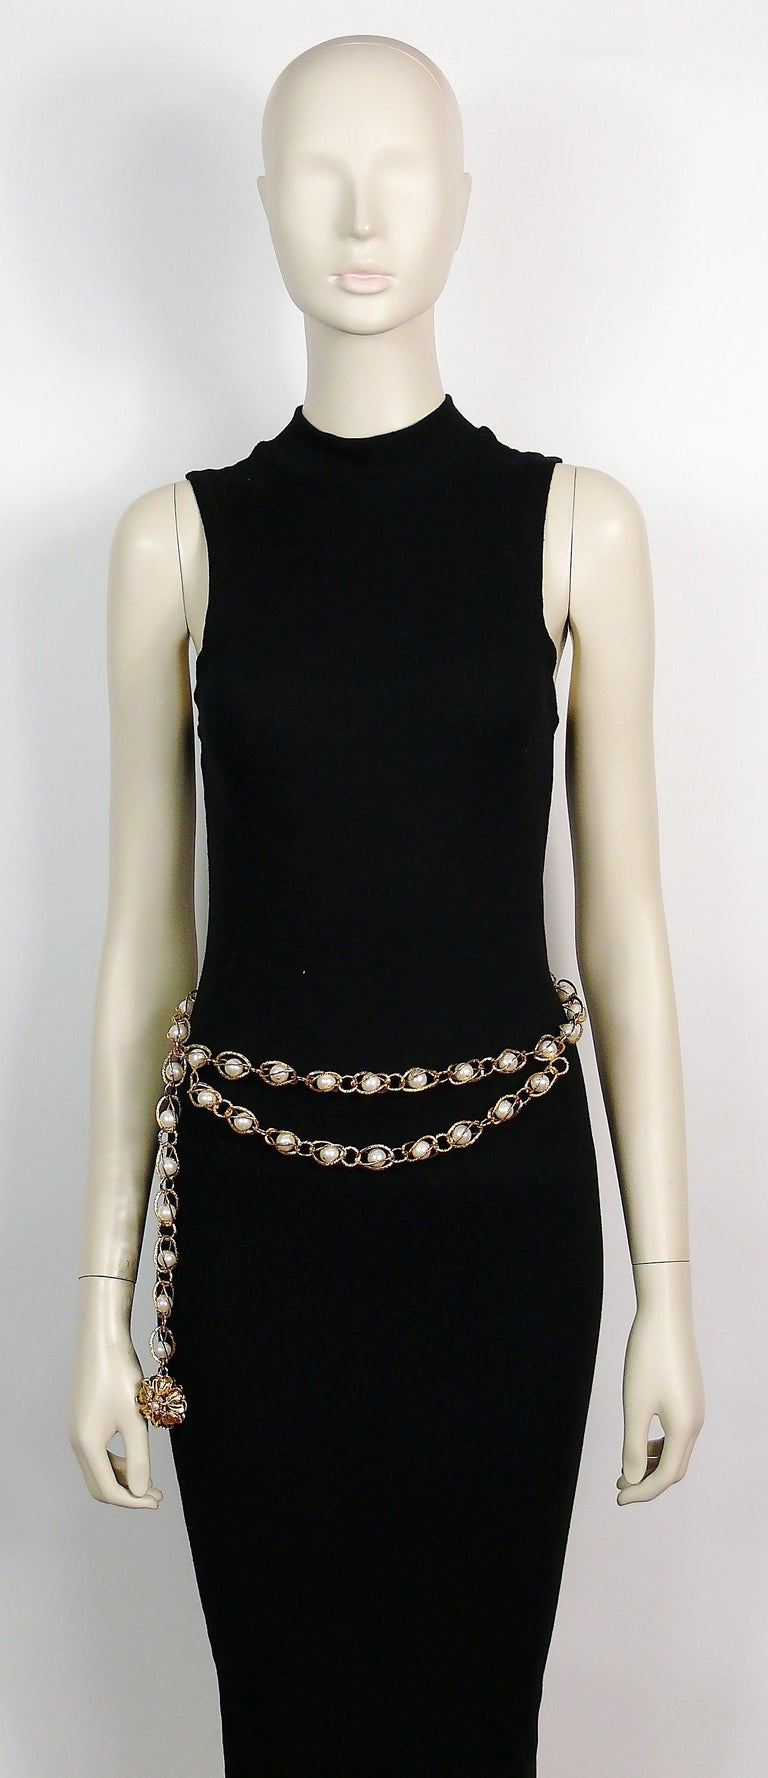 CHANEL gold toned belt featuring a chain-link of gold spheric cages encasing faux pearls, two hanging tiers and gold flower charm.  Hook clasp. Adjustable length. One size fits all.  Embossed CHANEL.  Indicative measurements : max. wearable length